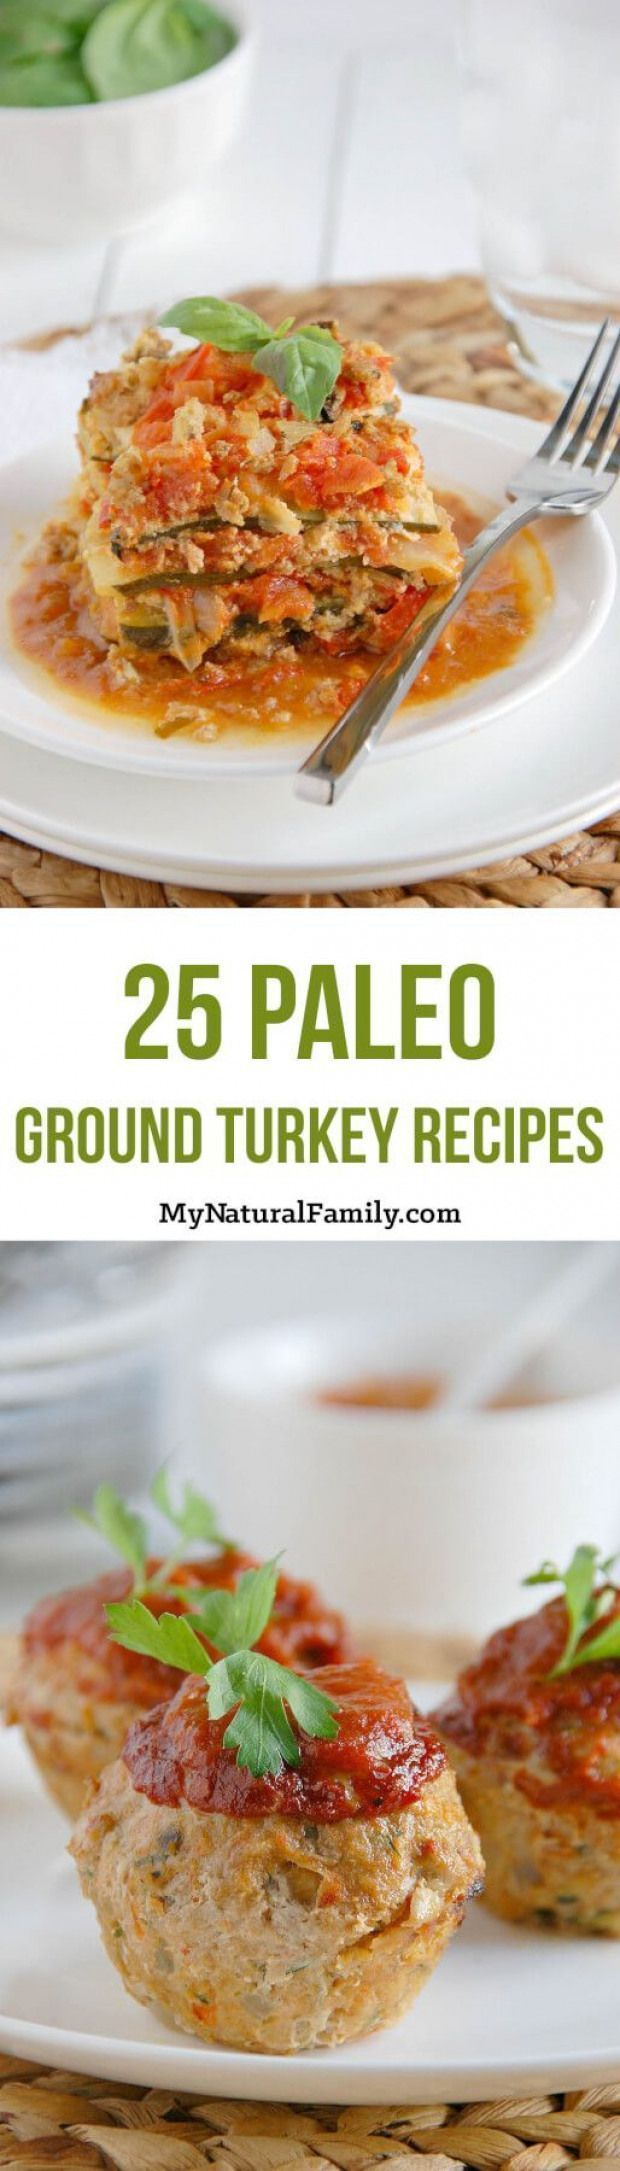 You have to admit - it's hard to find true Paleo ground turkey recipes. We have 25 of them from Taco Salad Burgers Meatballs Meatloaf and Goulash. #paleodiet #groundturkeytacos You have to admit - it's hard to find true Paleo ground turkey recipes. We have 25 of them from Taco Salad Burgers Meatballs Meatloaf and Goulash. #paleodiet #groundturkeytacos You have to admit - it's hard to find true Paleo ground turkey recipes. We have 25 of them from Taco Salad Burgers Meatballs Meatloaf and Goulash. #groundturkeytacos